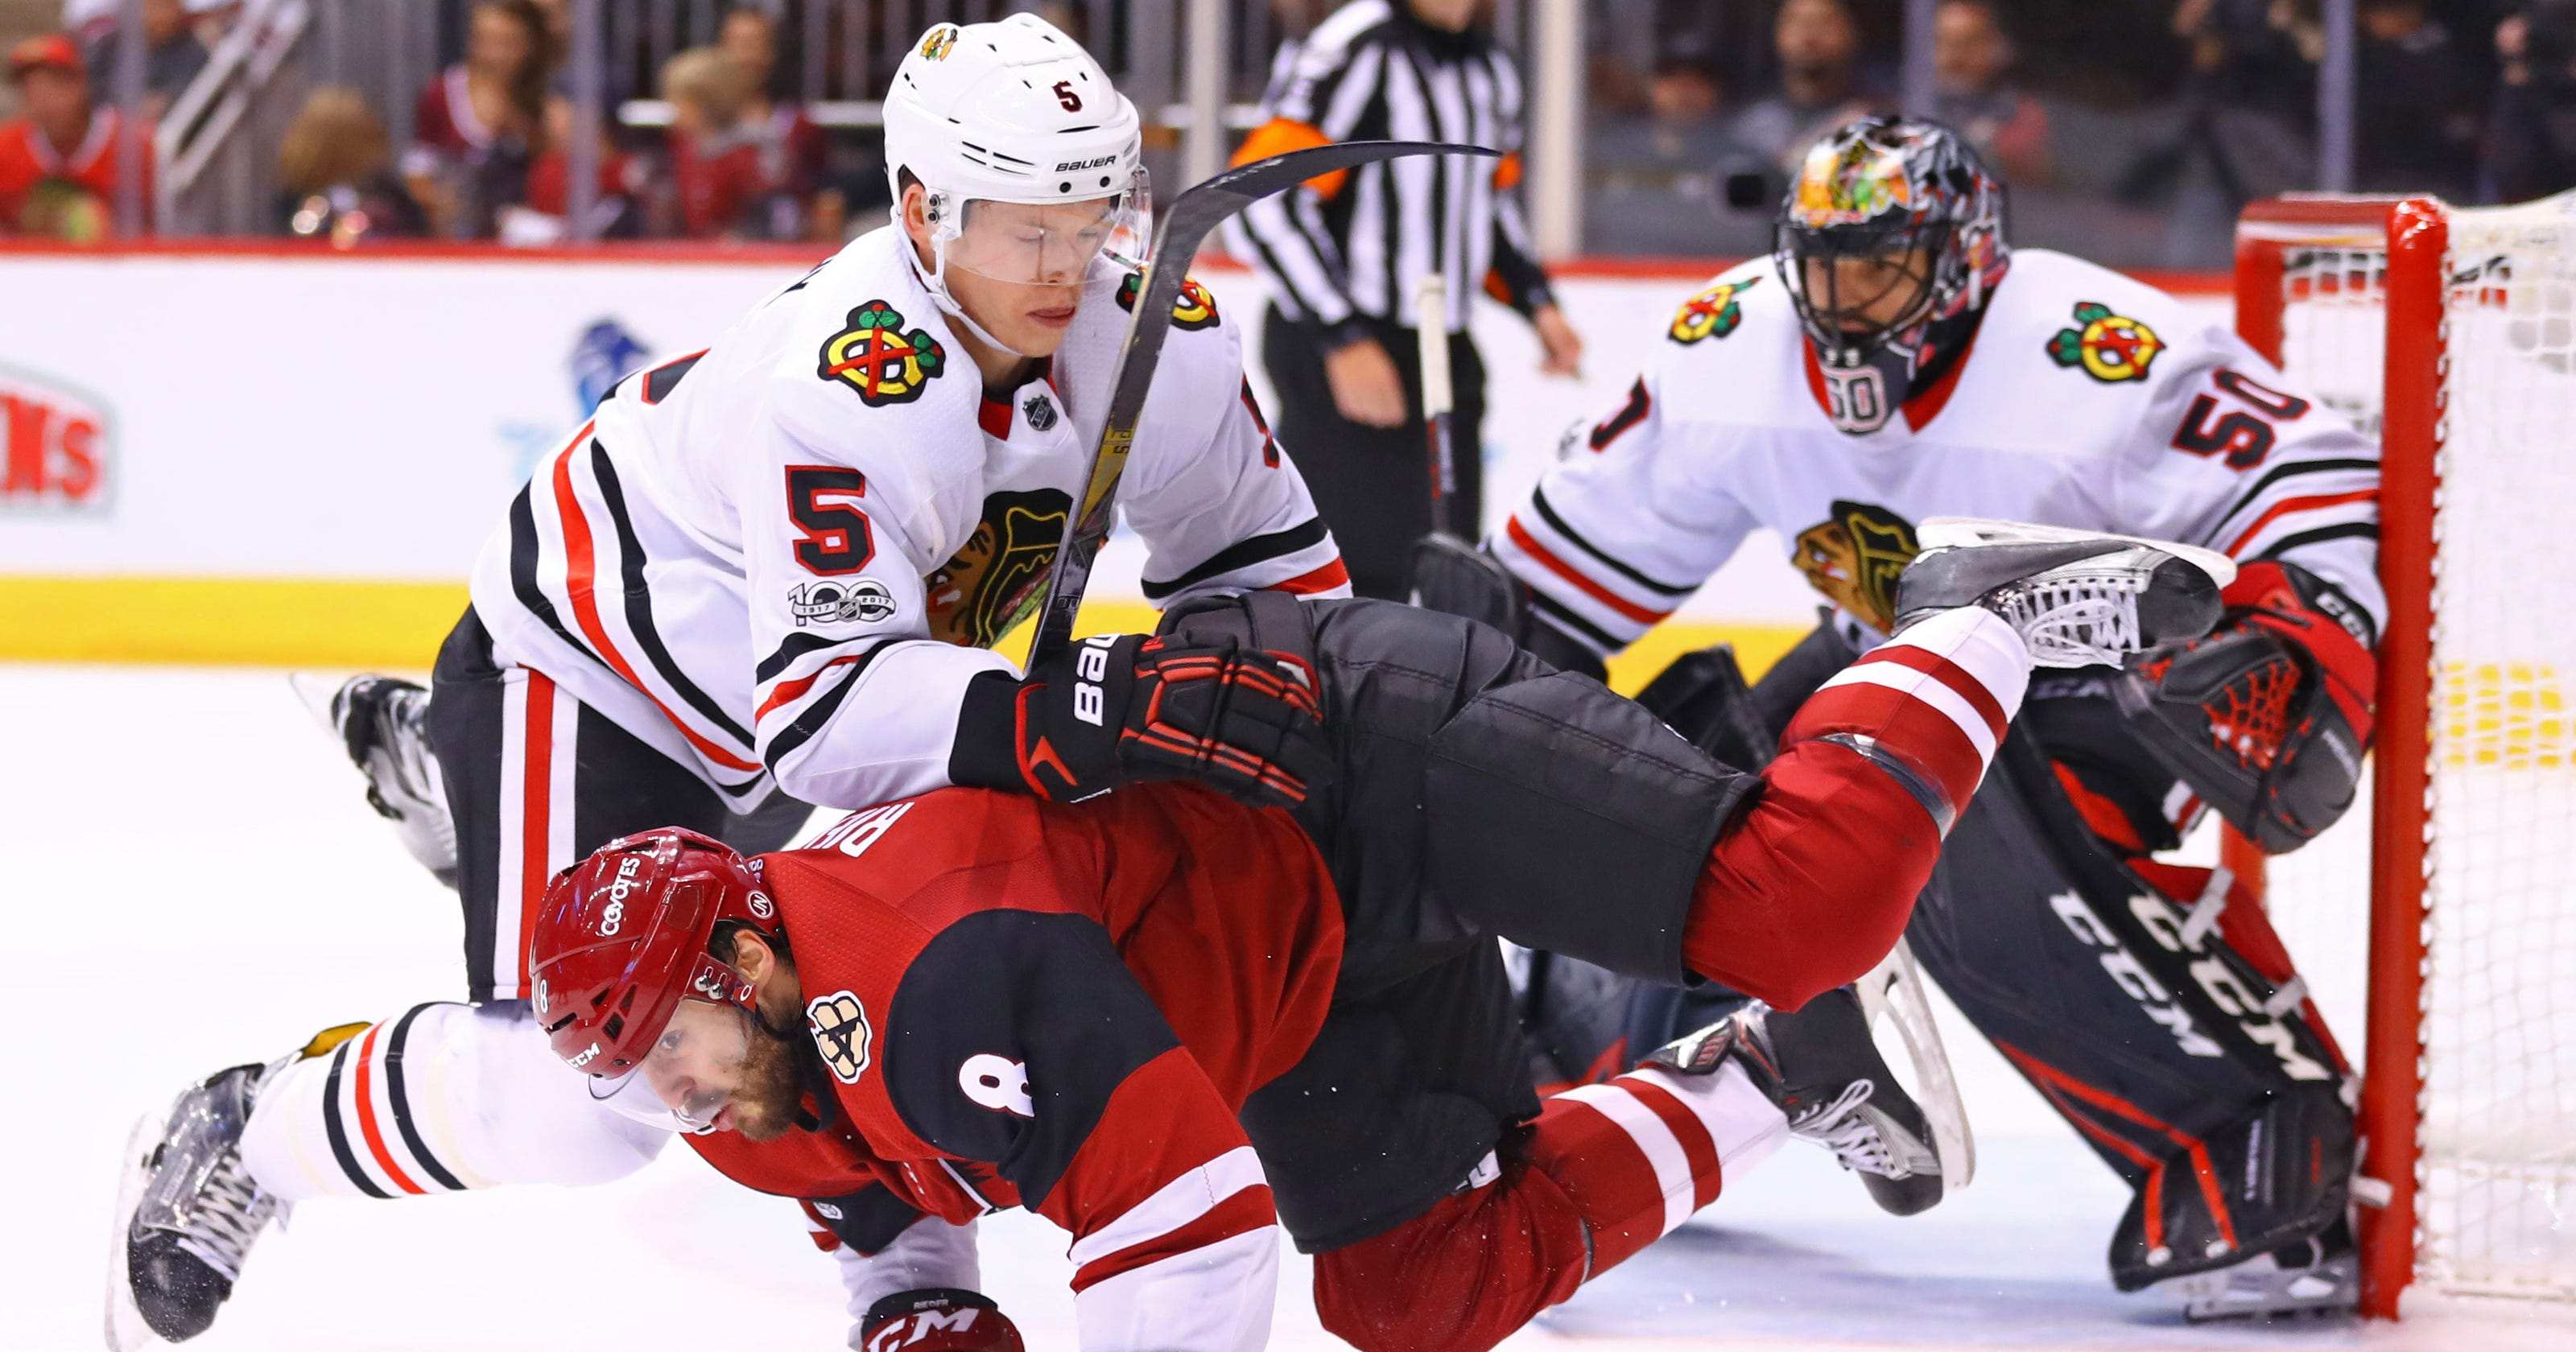 Coyotes still searching for first win after falling to Blackhawks d119b0731